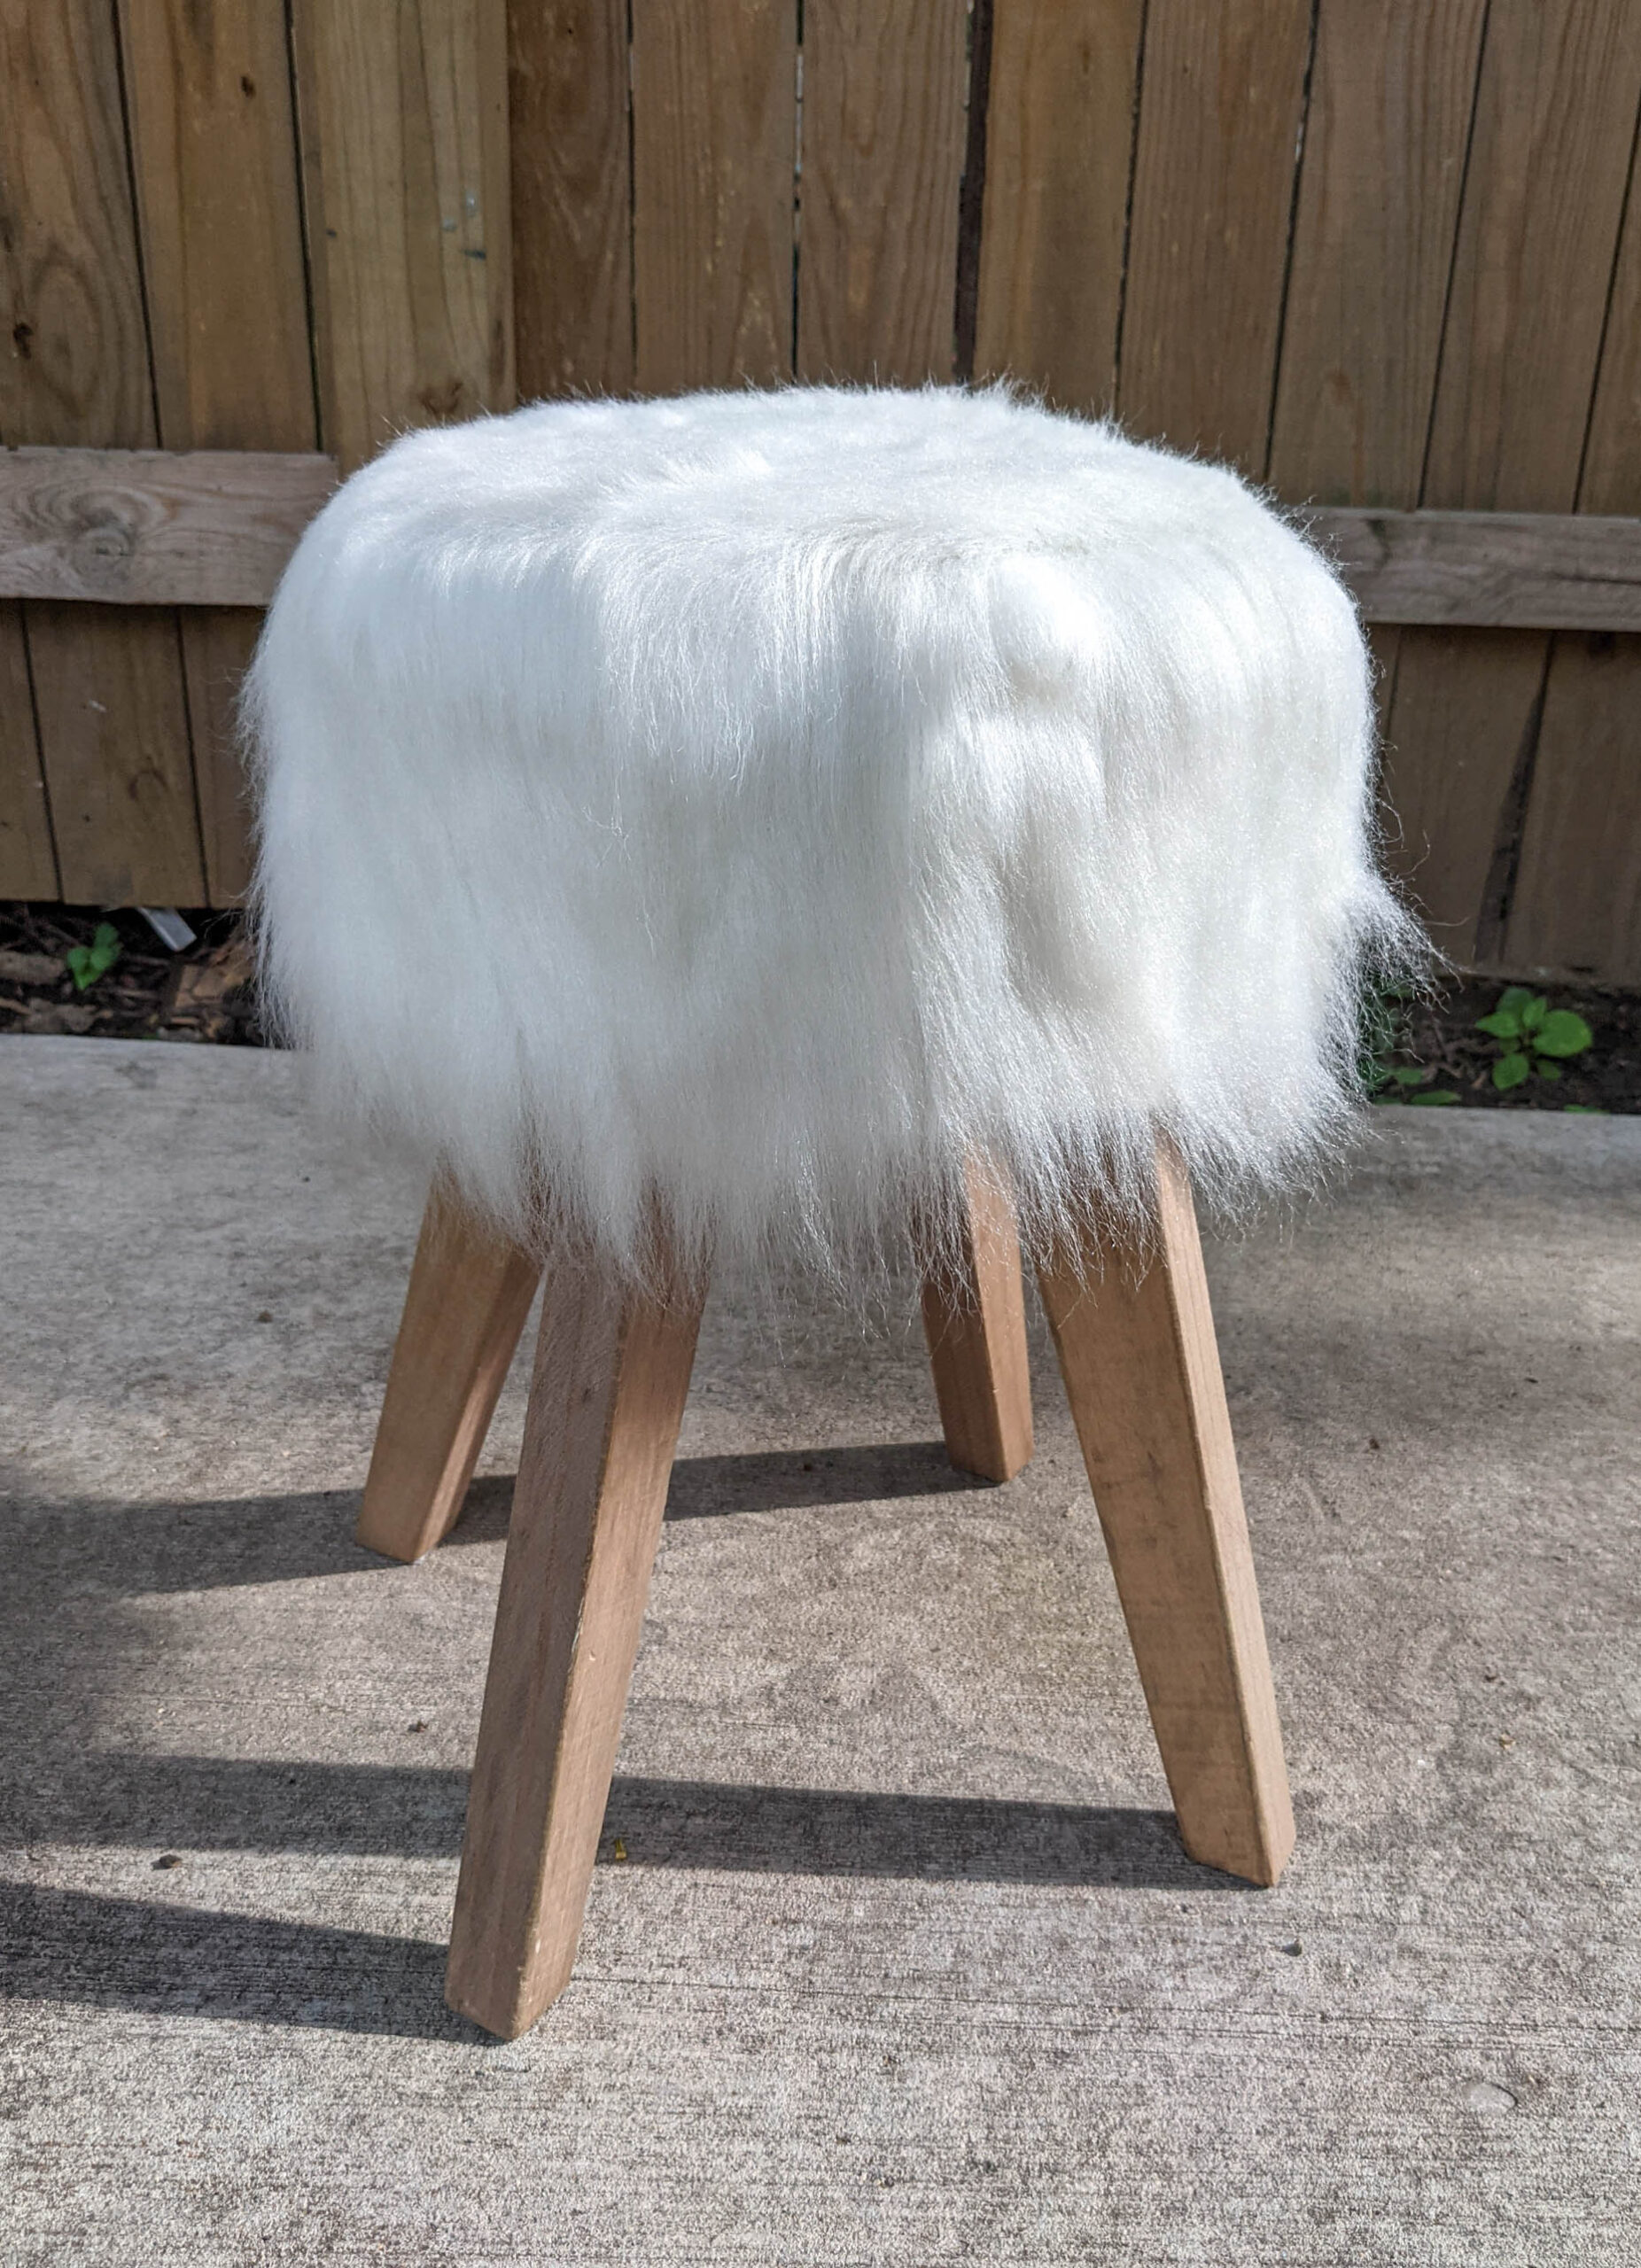 Ottoman after cleaning and combing.